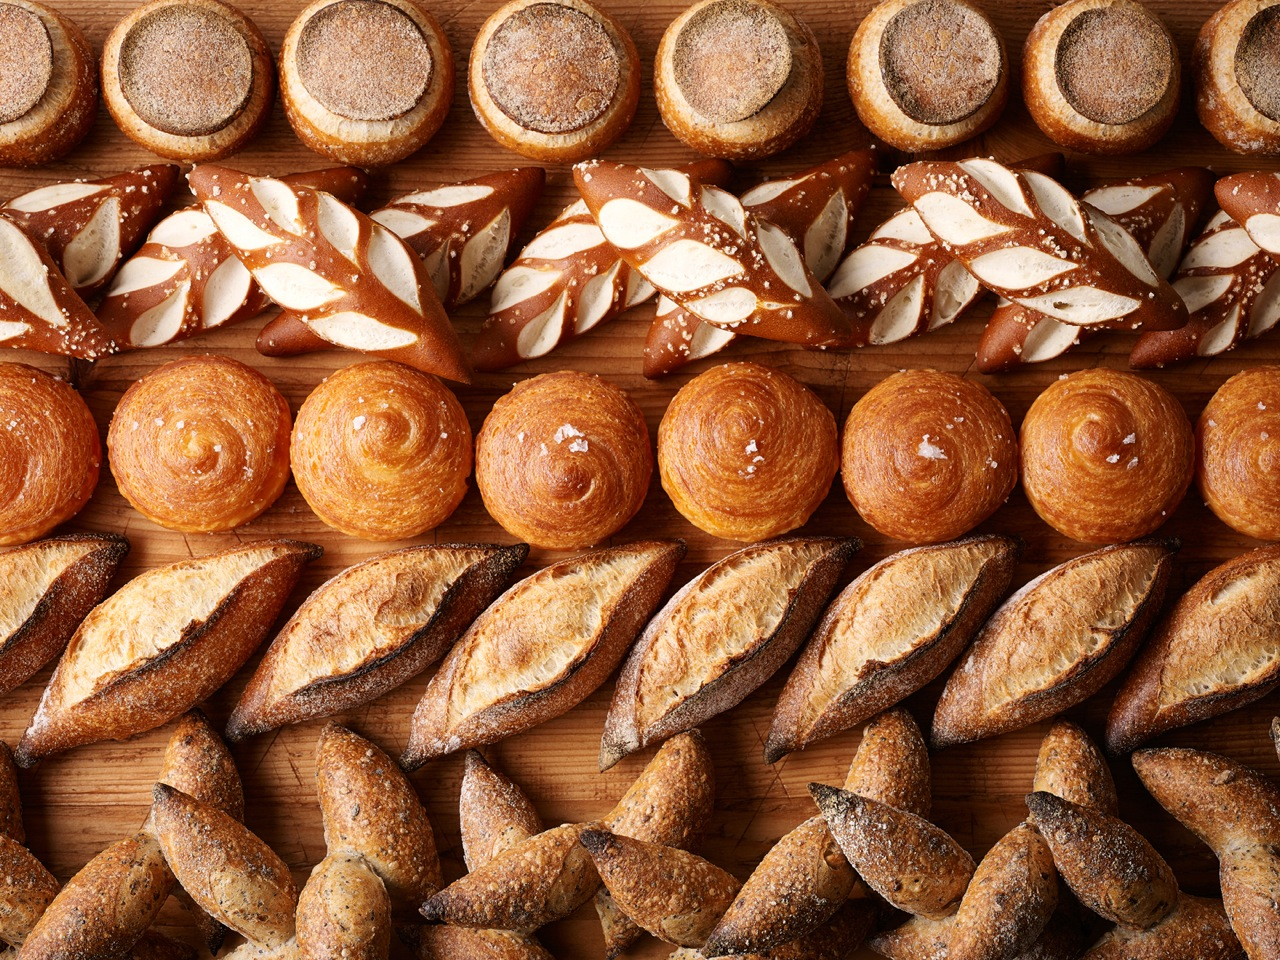 BreadAssortment_28413